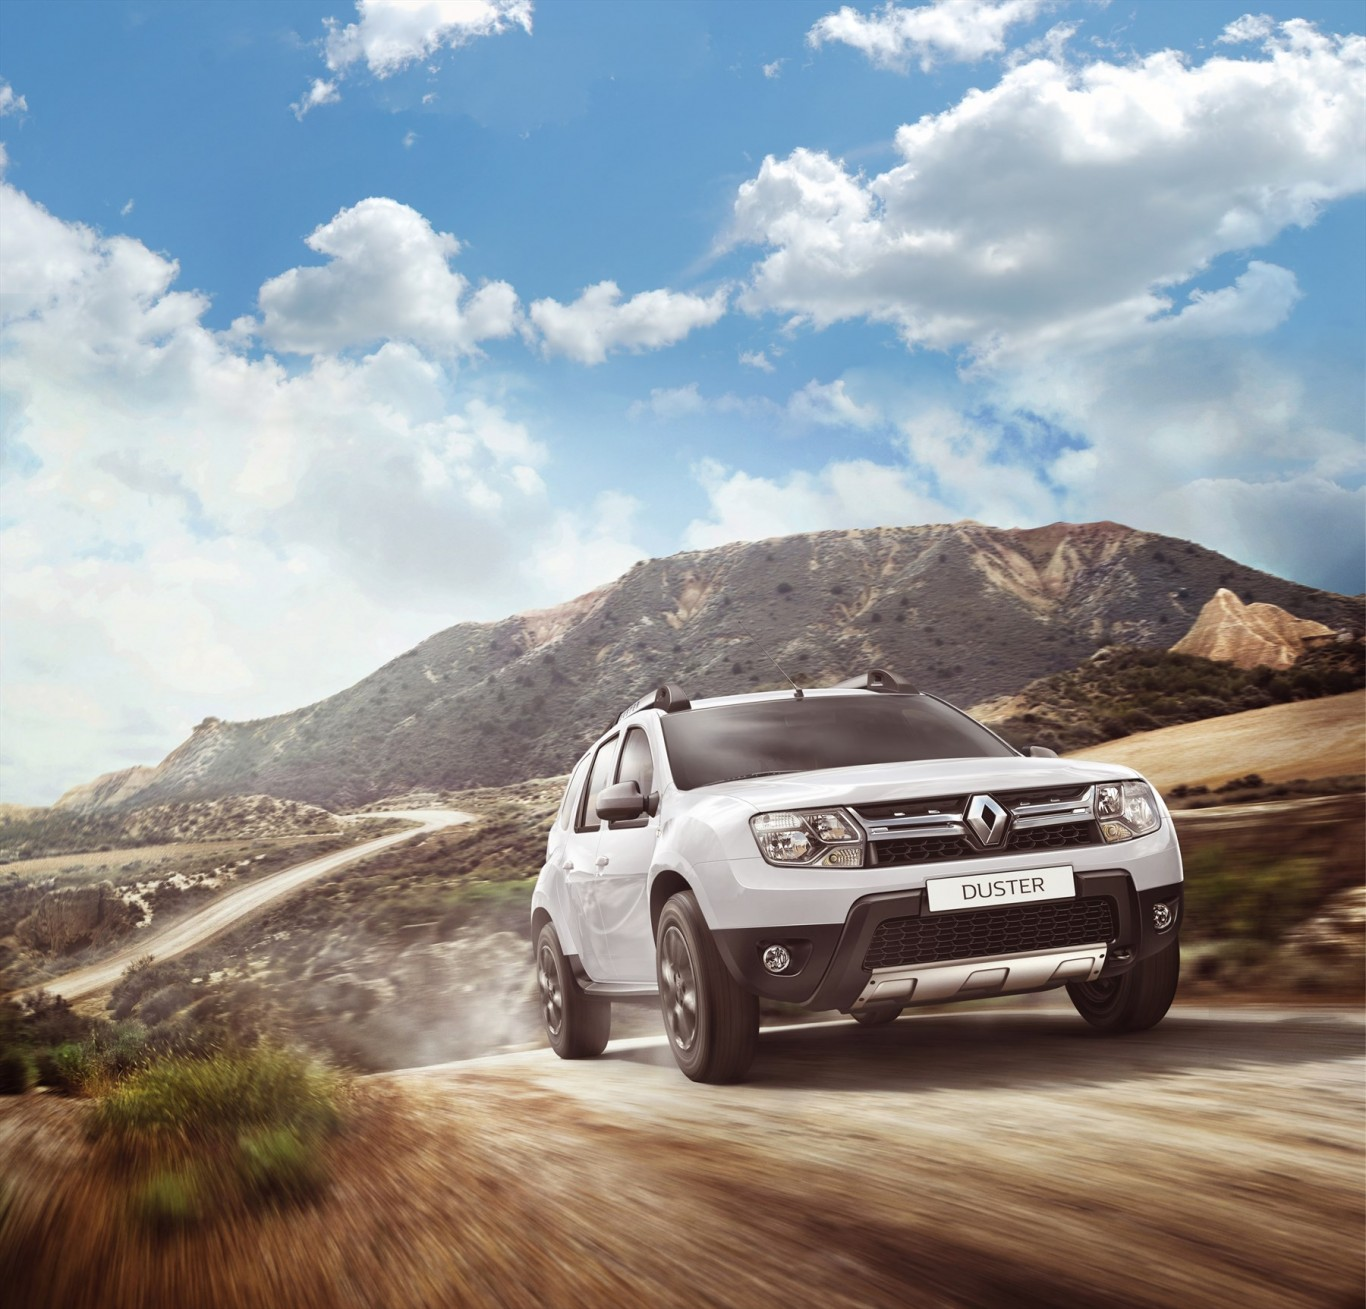 Renault Duster SUV MY16 ready to rock SA this summer!